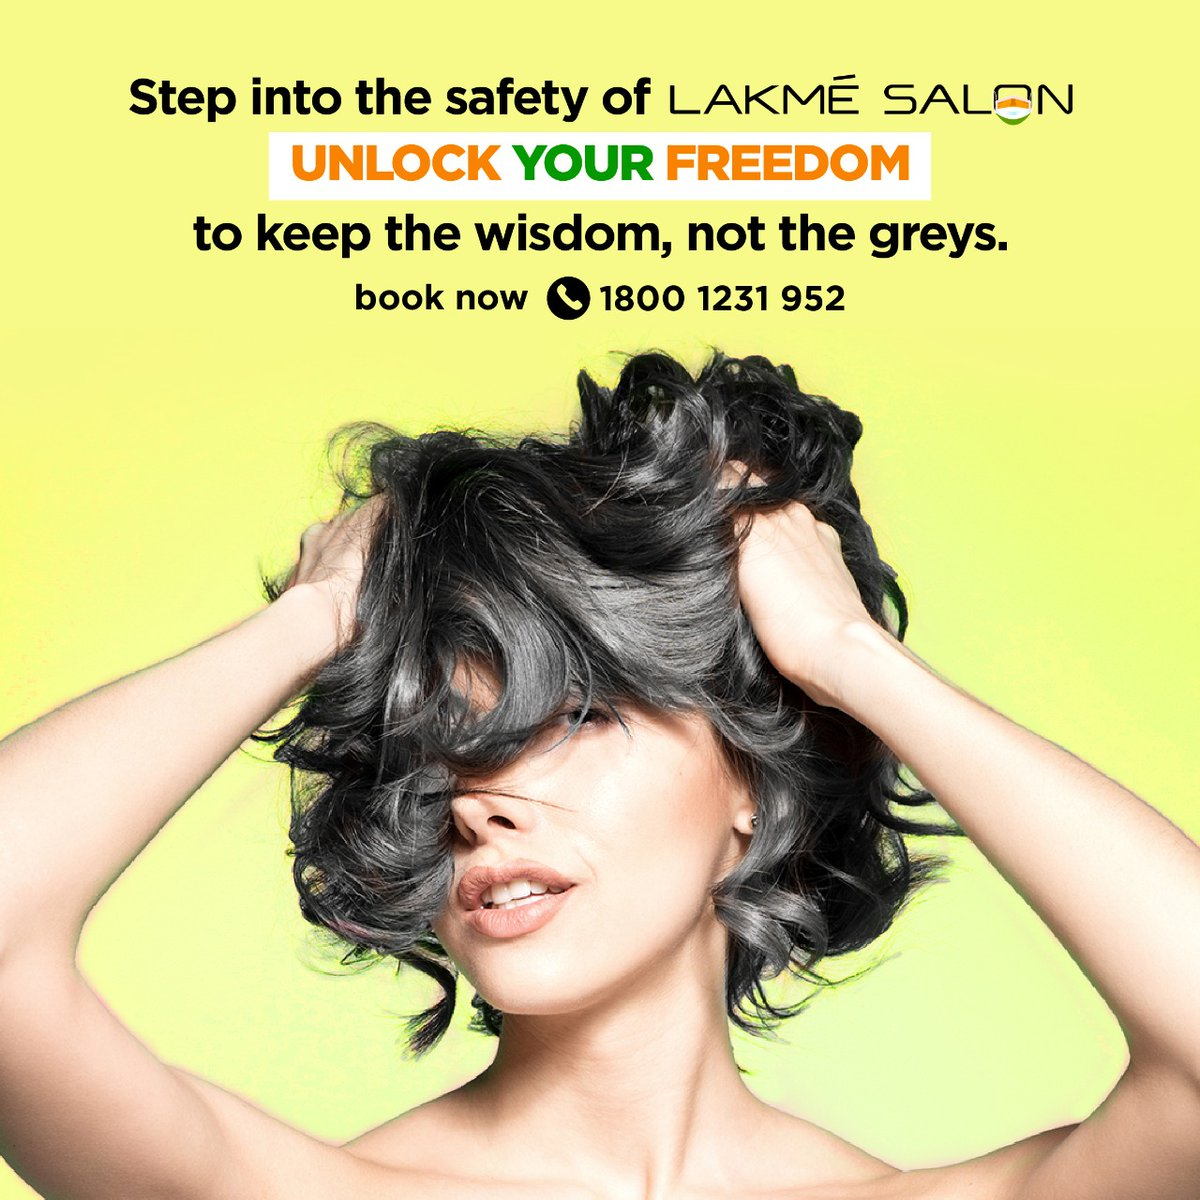 Are those greys making a comeback? While it's good to act your age, don't let salt & pepper take over your mane! Just step into the safety of Lakmé Salon and #UnlockYourFreedom from greys to get back your good hair days. 📞 us on 1800-123-1952 or download the Lakmé Salon App https://t.co/RU2nS9uTGB